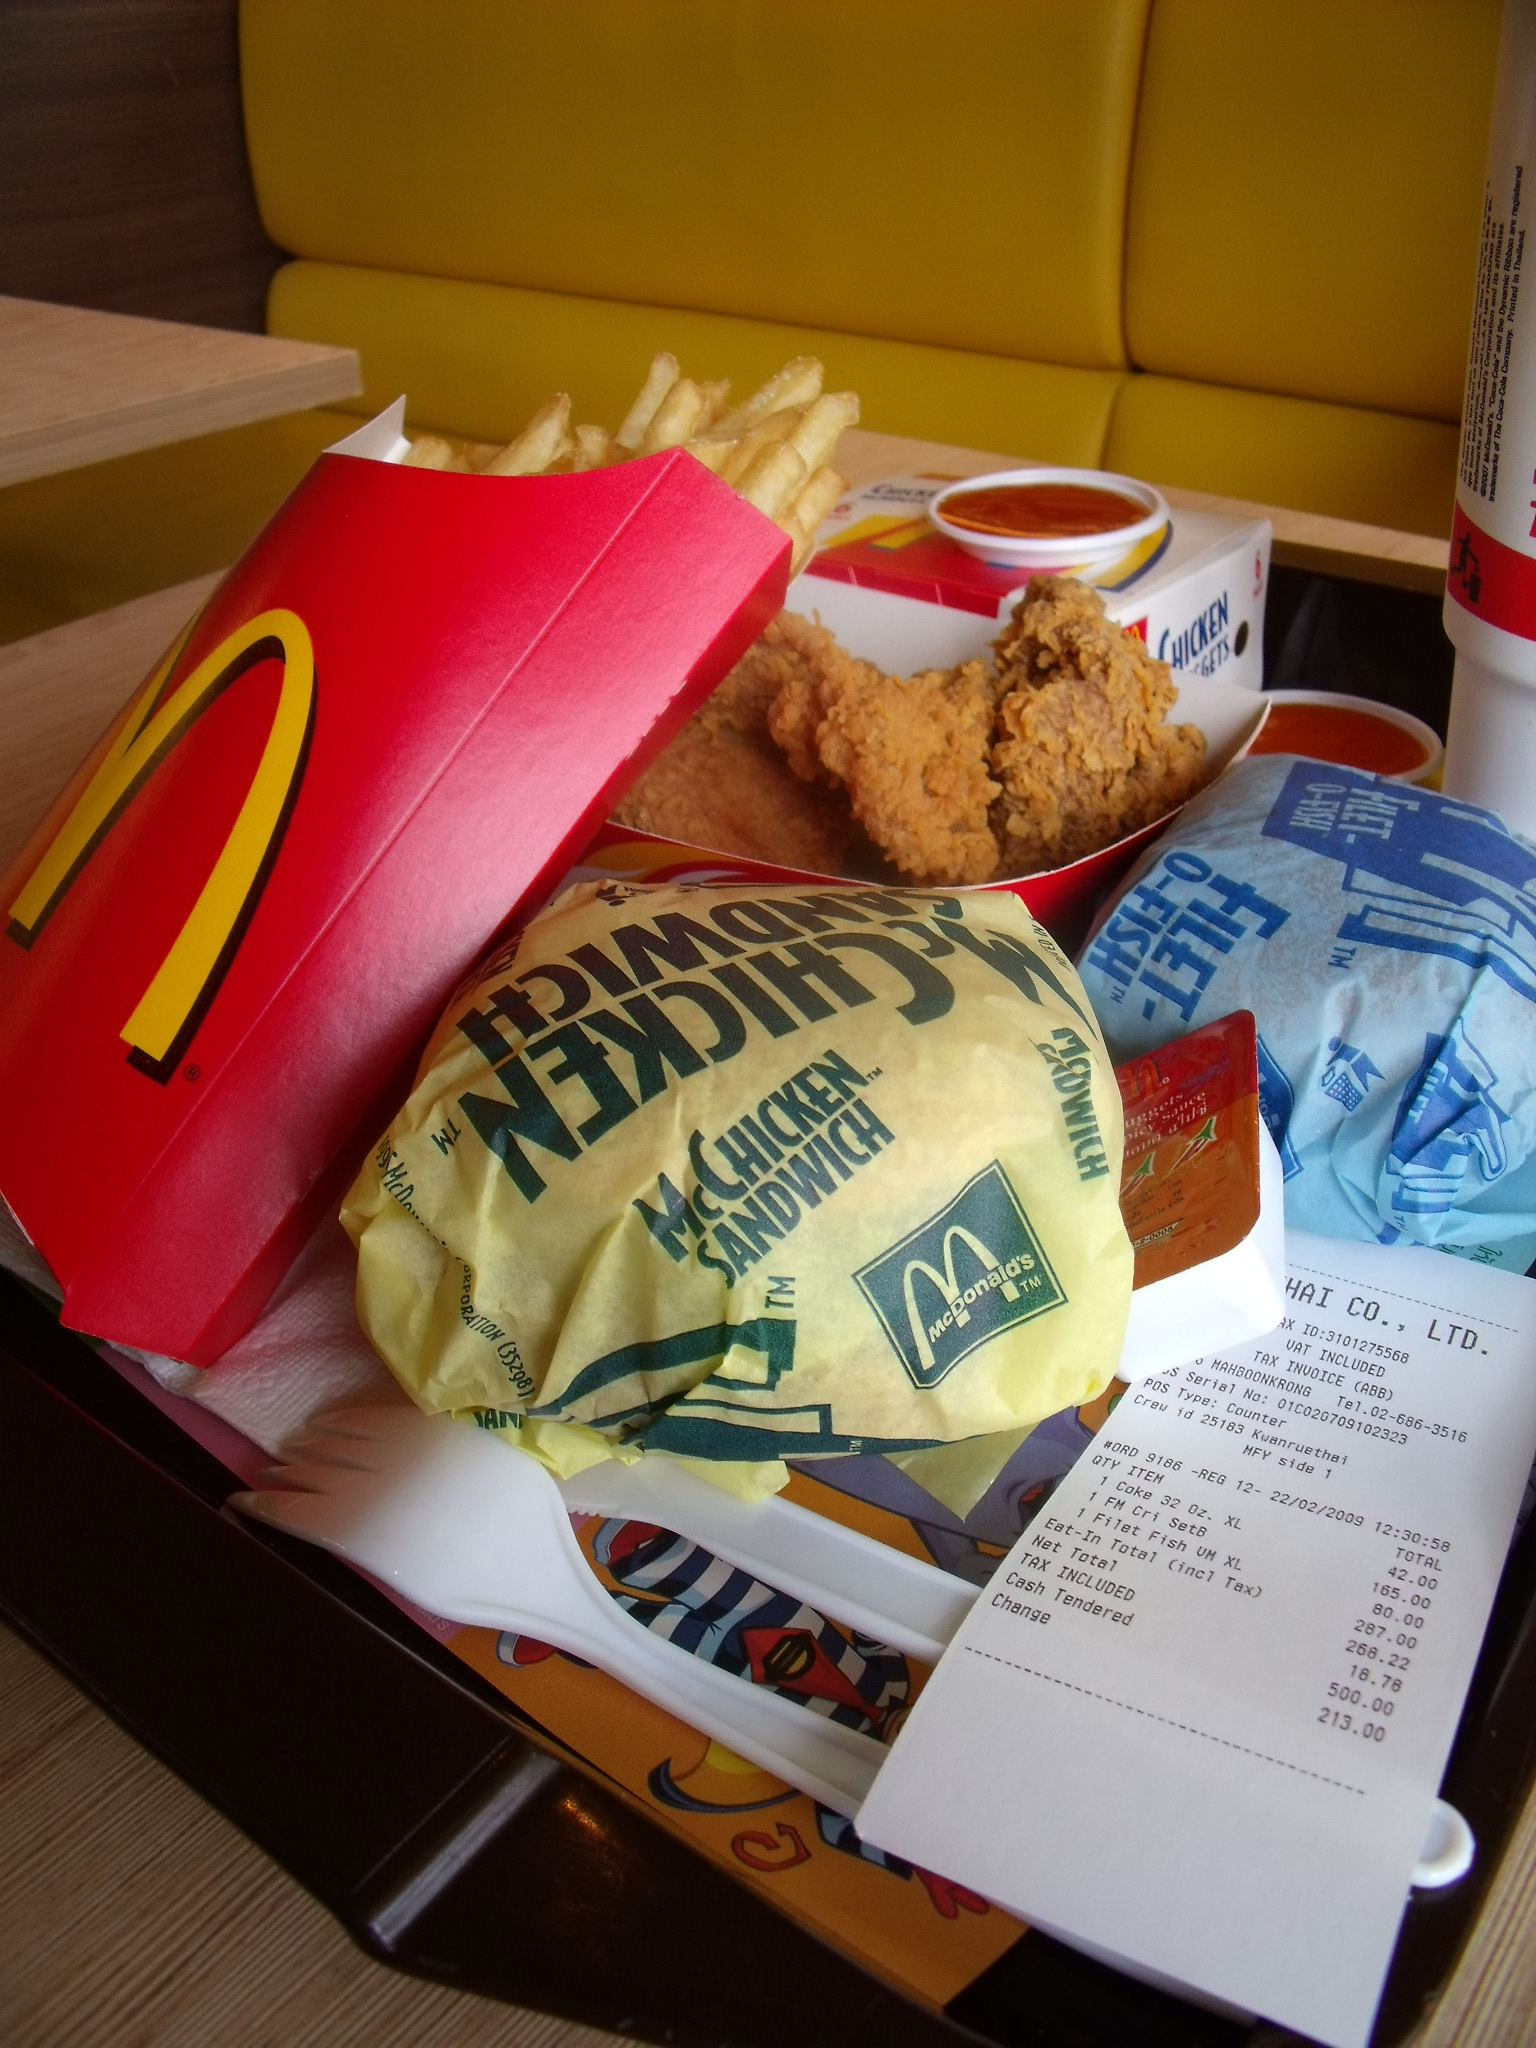 File:McDonalds Meal.JPG  Wikipedia, the free encyclopedia